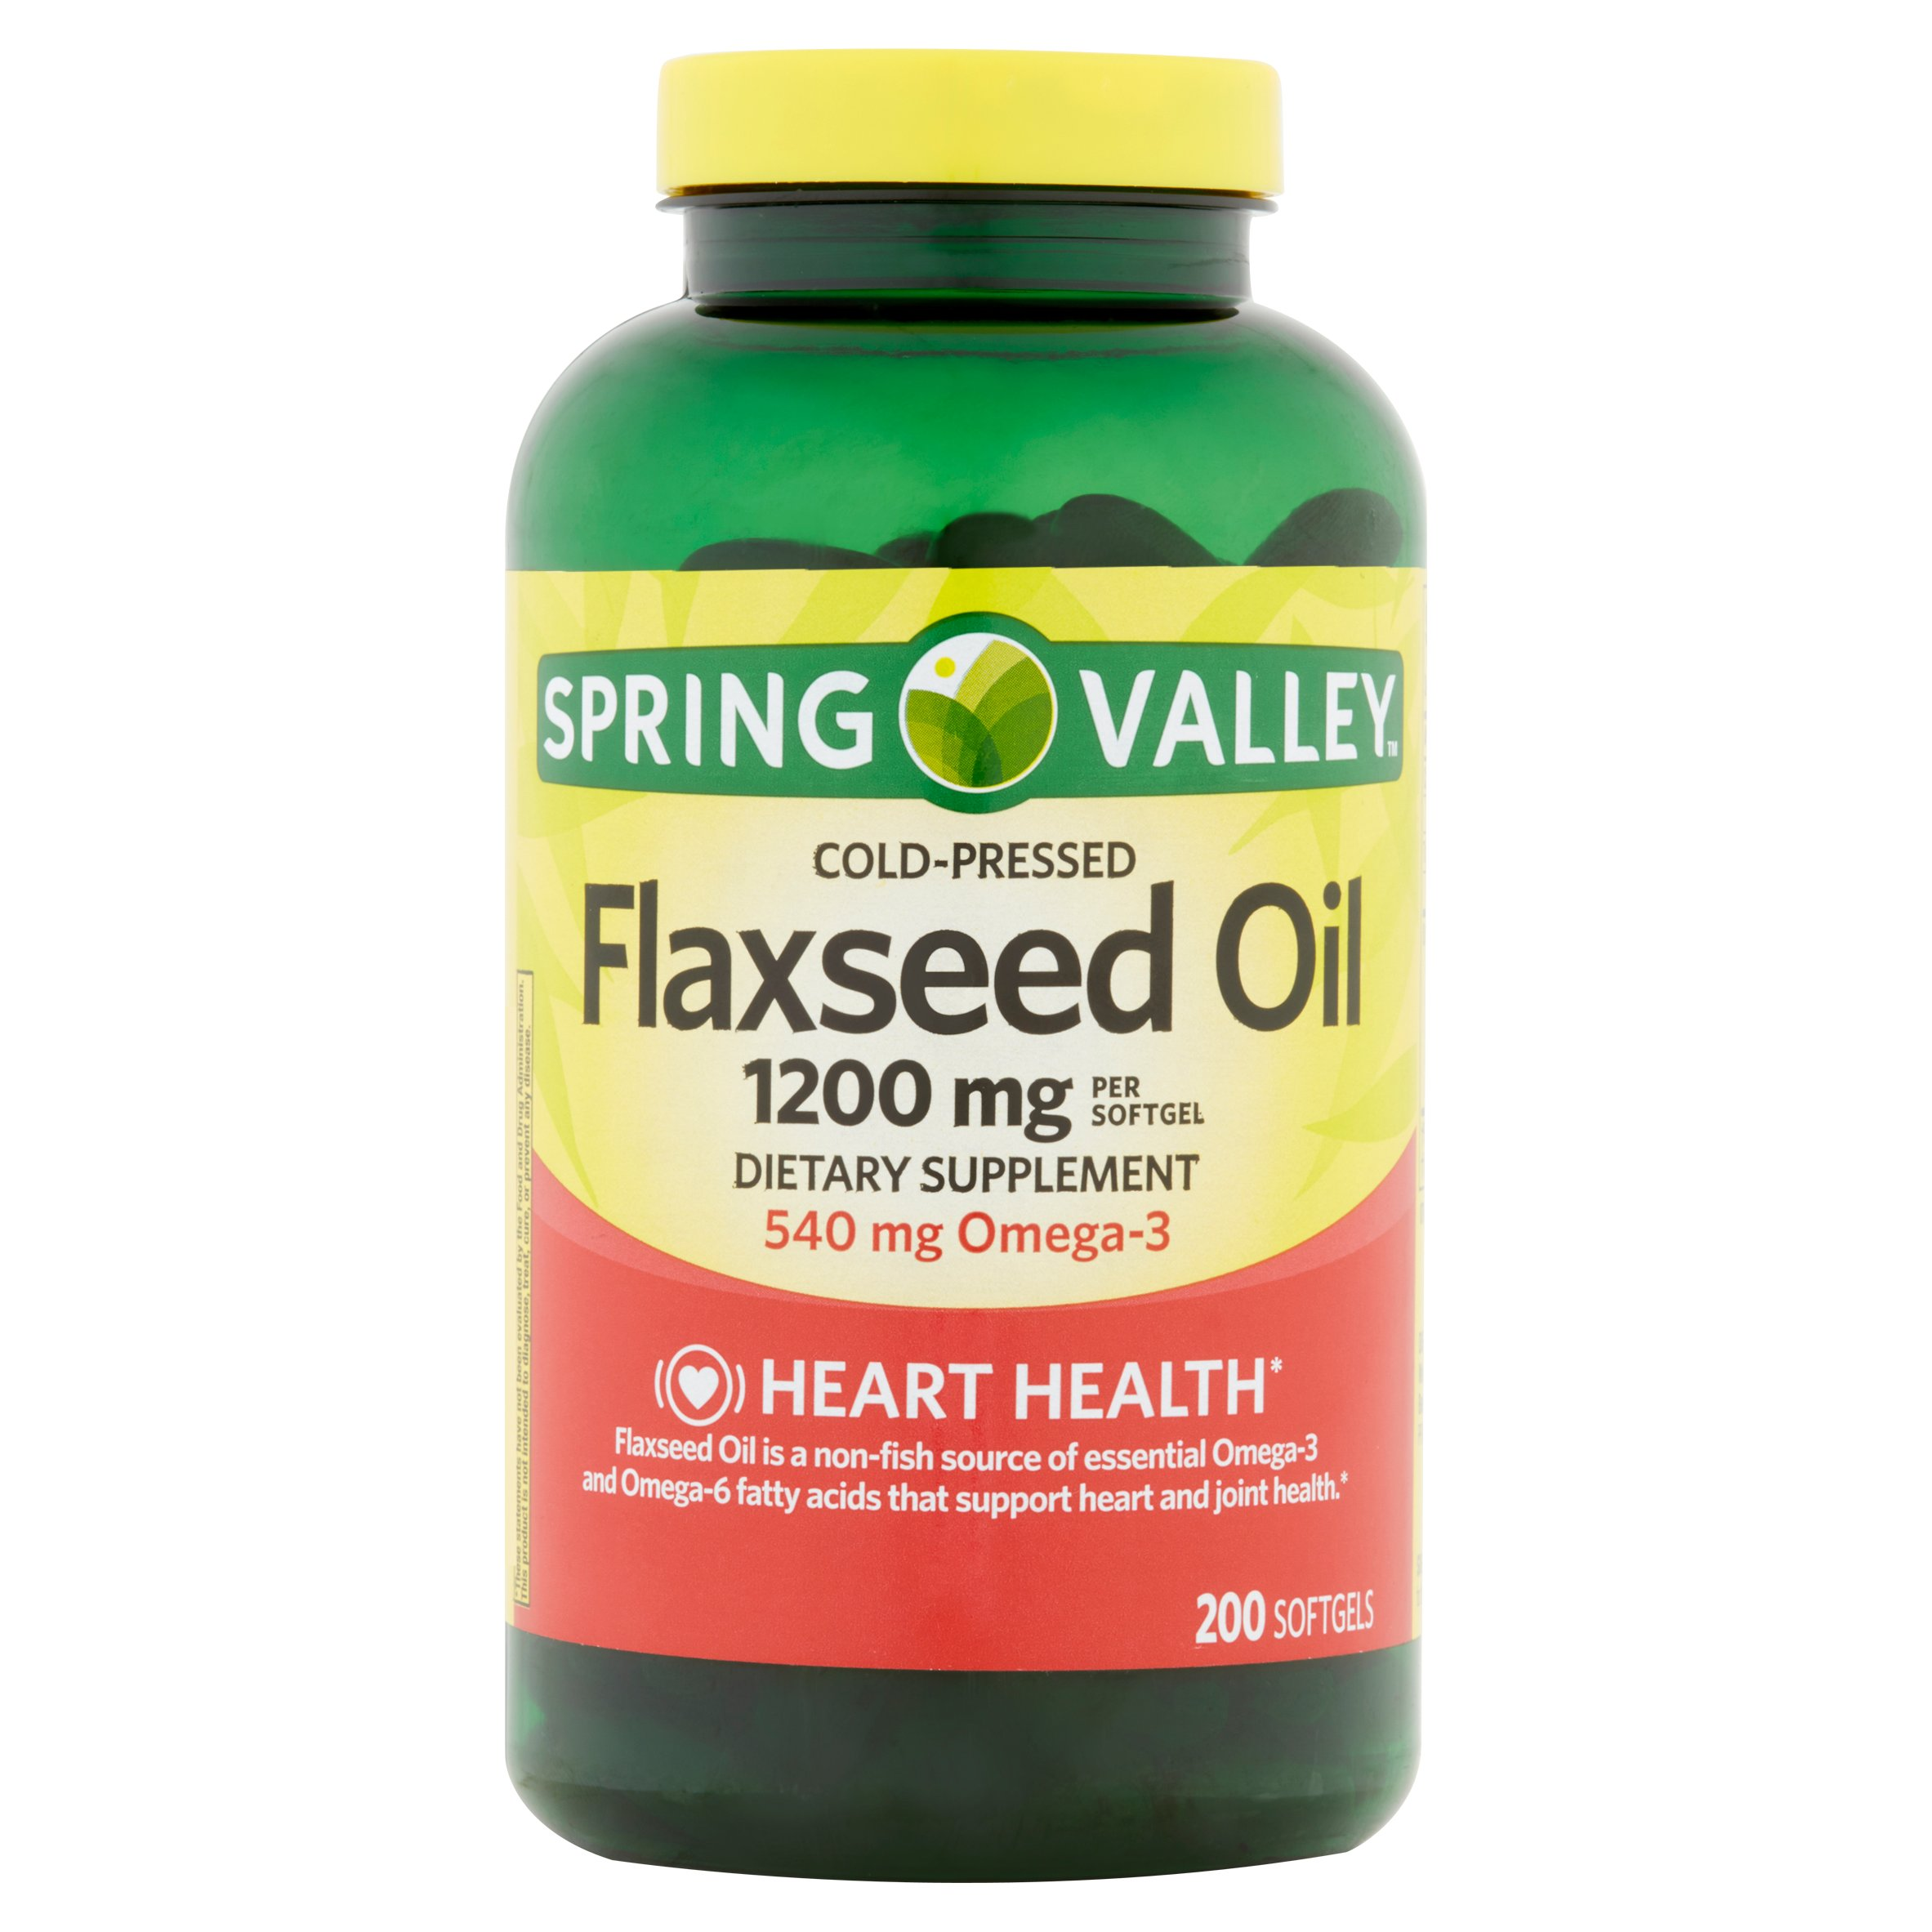 Spring Valley Flaxseed Oil Softgels, 1200 mg, 200 Ct